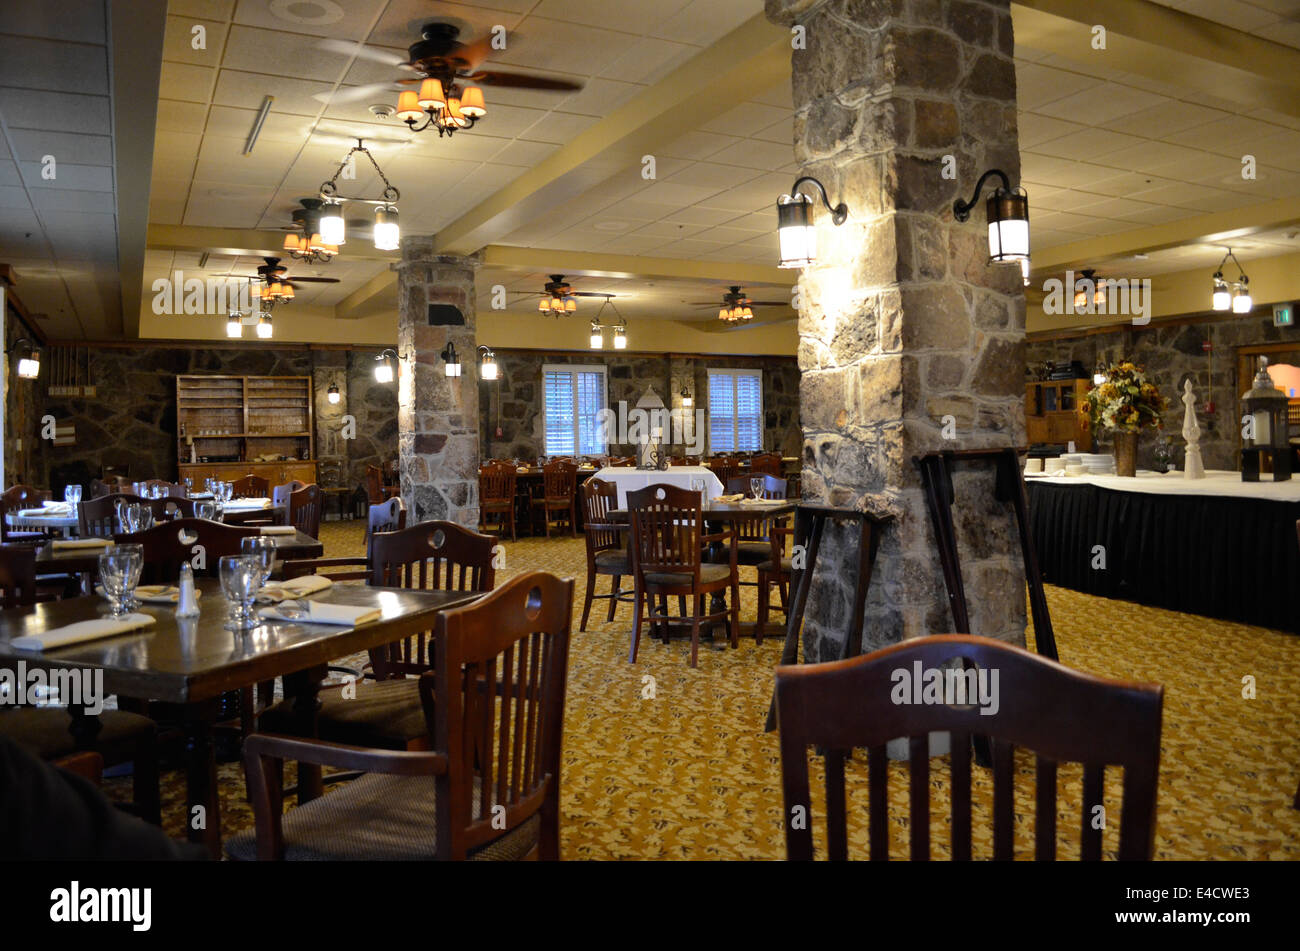 Dining Room At Mountain Lake Lodge In Virgina Featured In The Movie